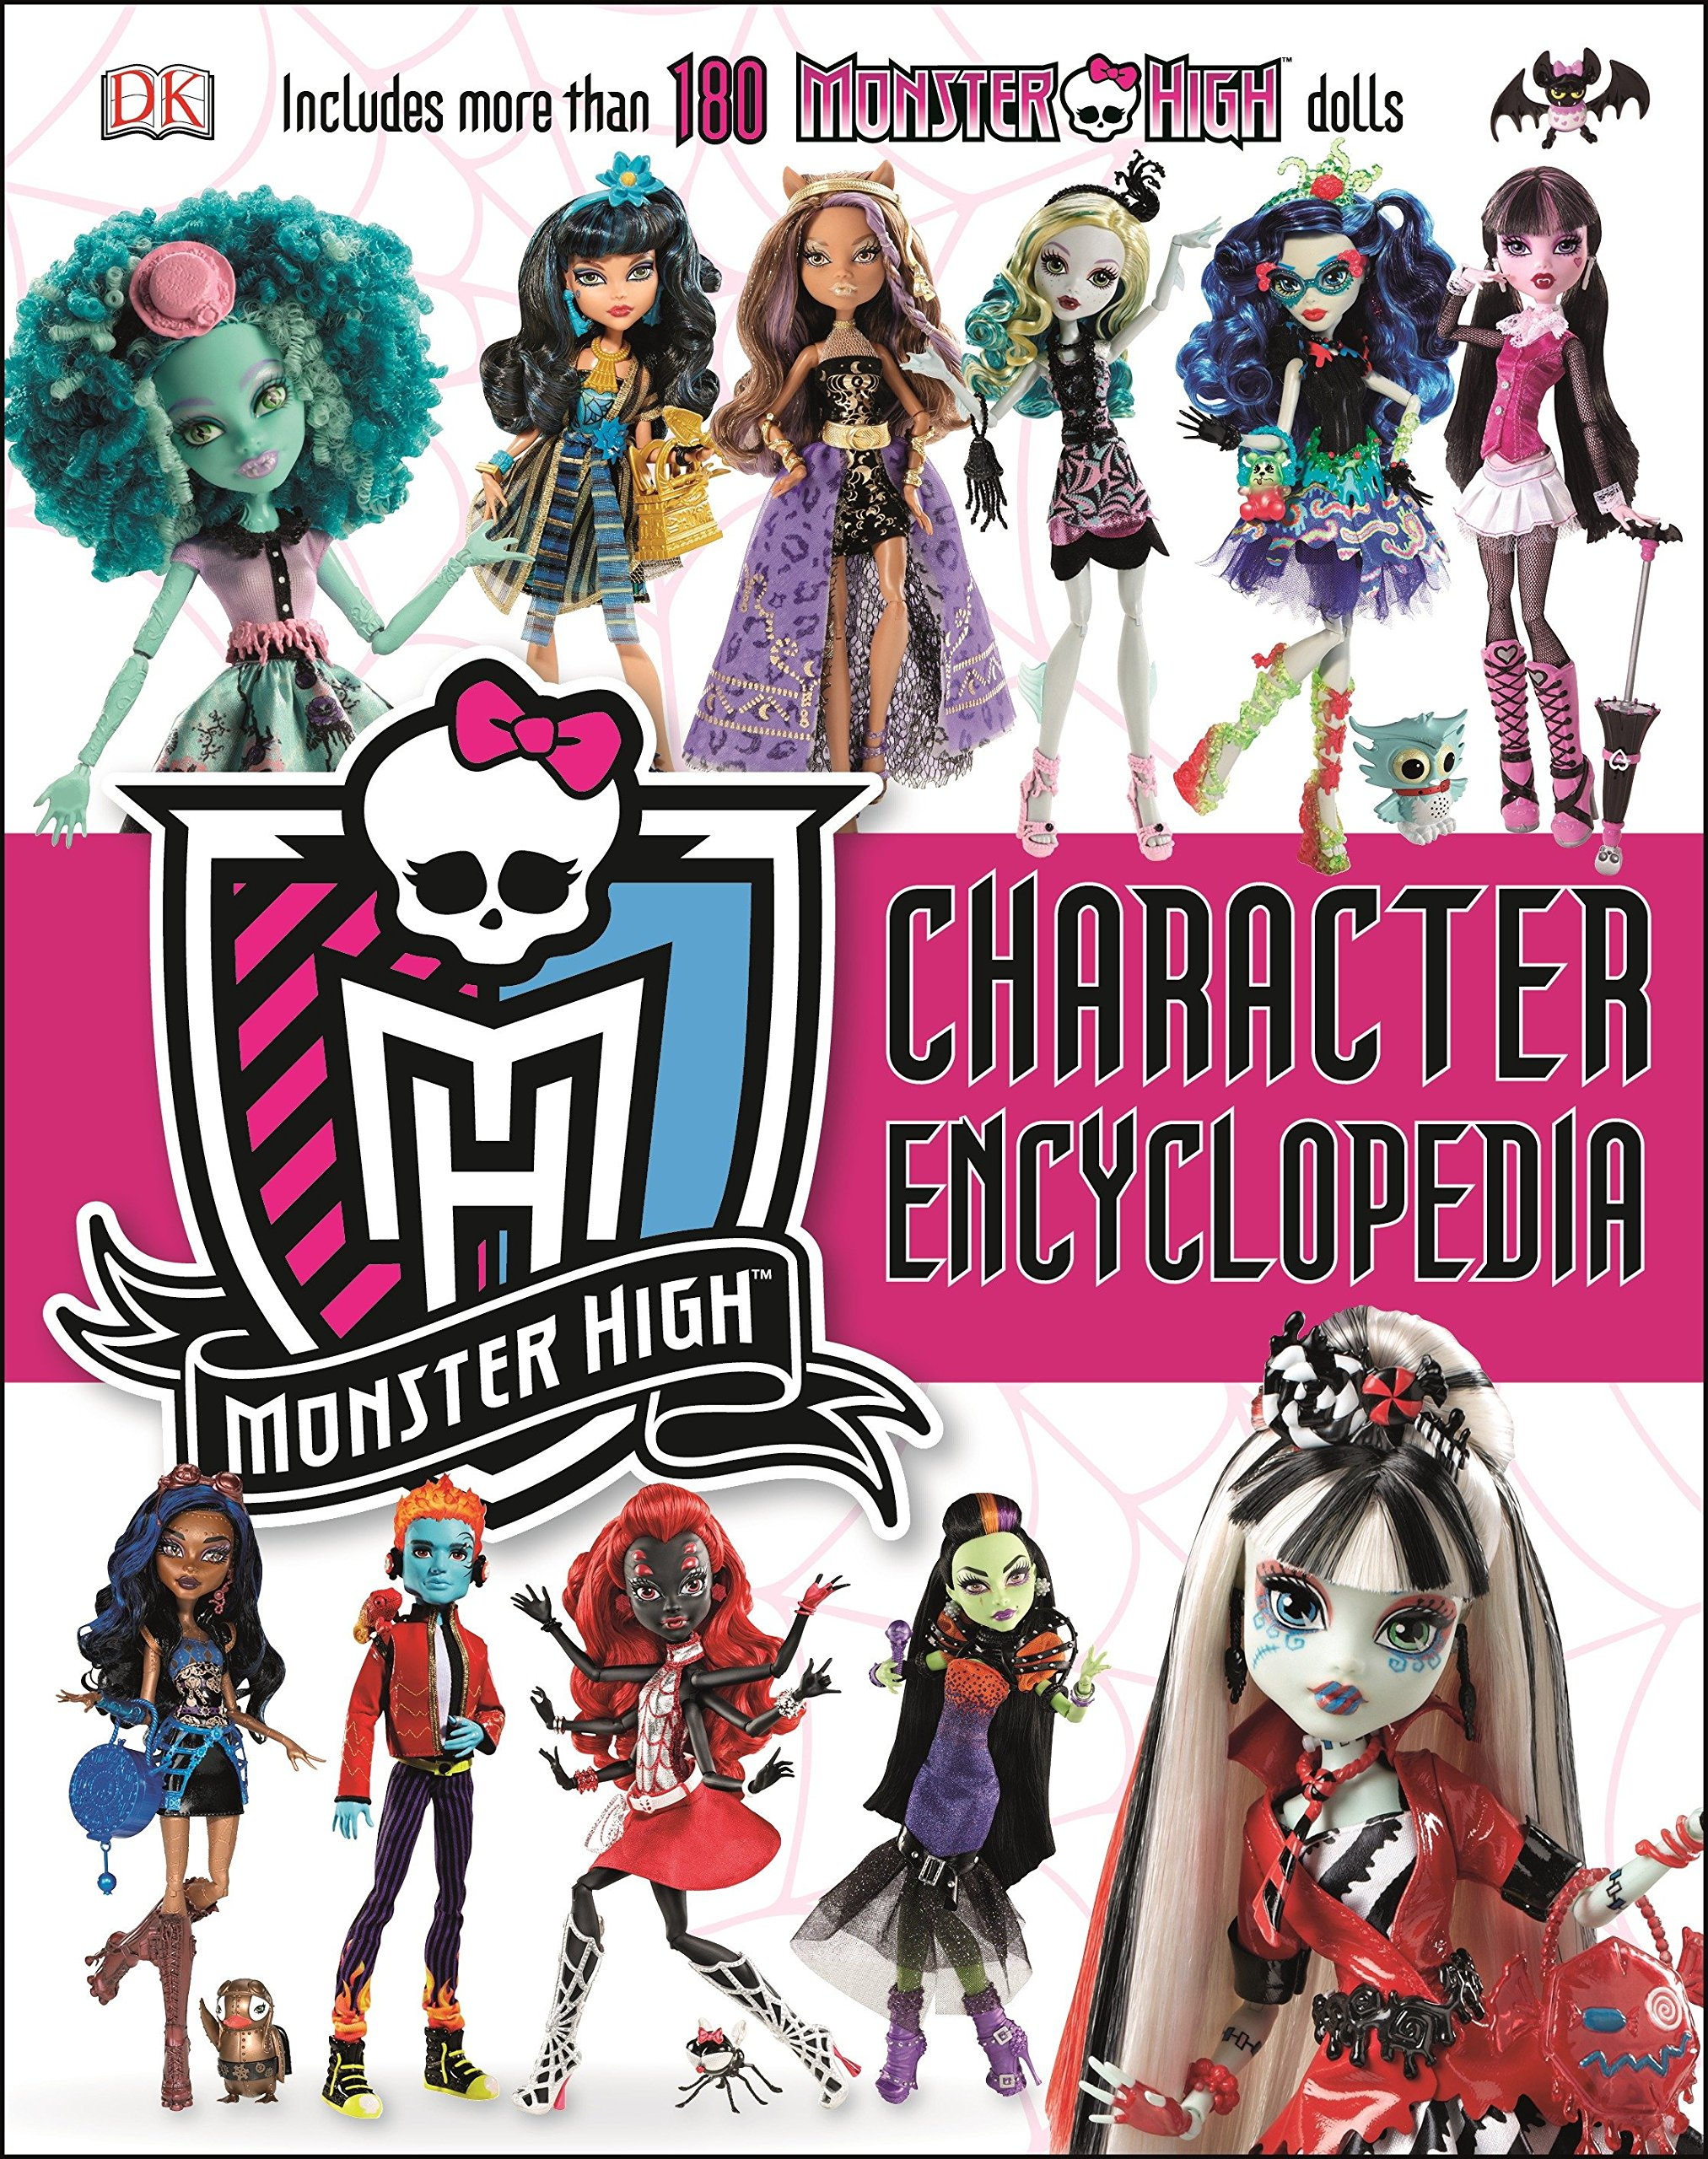 Monster High Character Encyclopedia More Than 180 Monster High Dolls Hardie Eric 9781465450920 Amazon Com Books